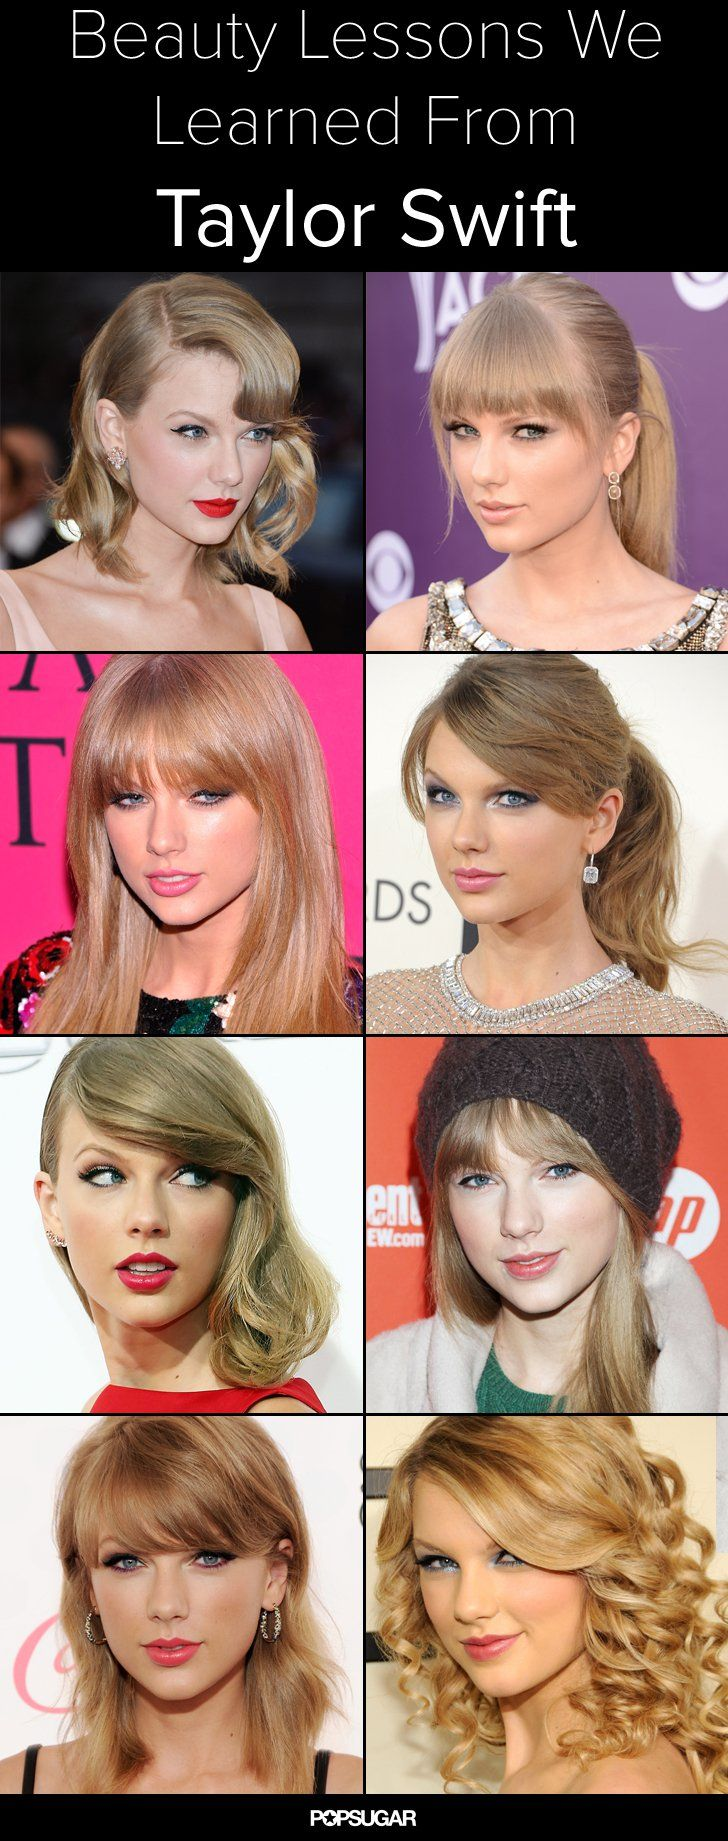 Pin for Later: 8 Conseils Pour Être Aussi Glamour que Taylor Swift